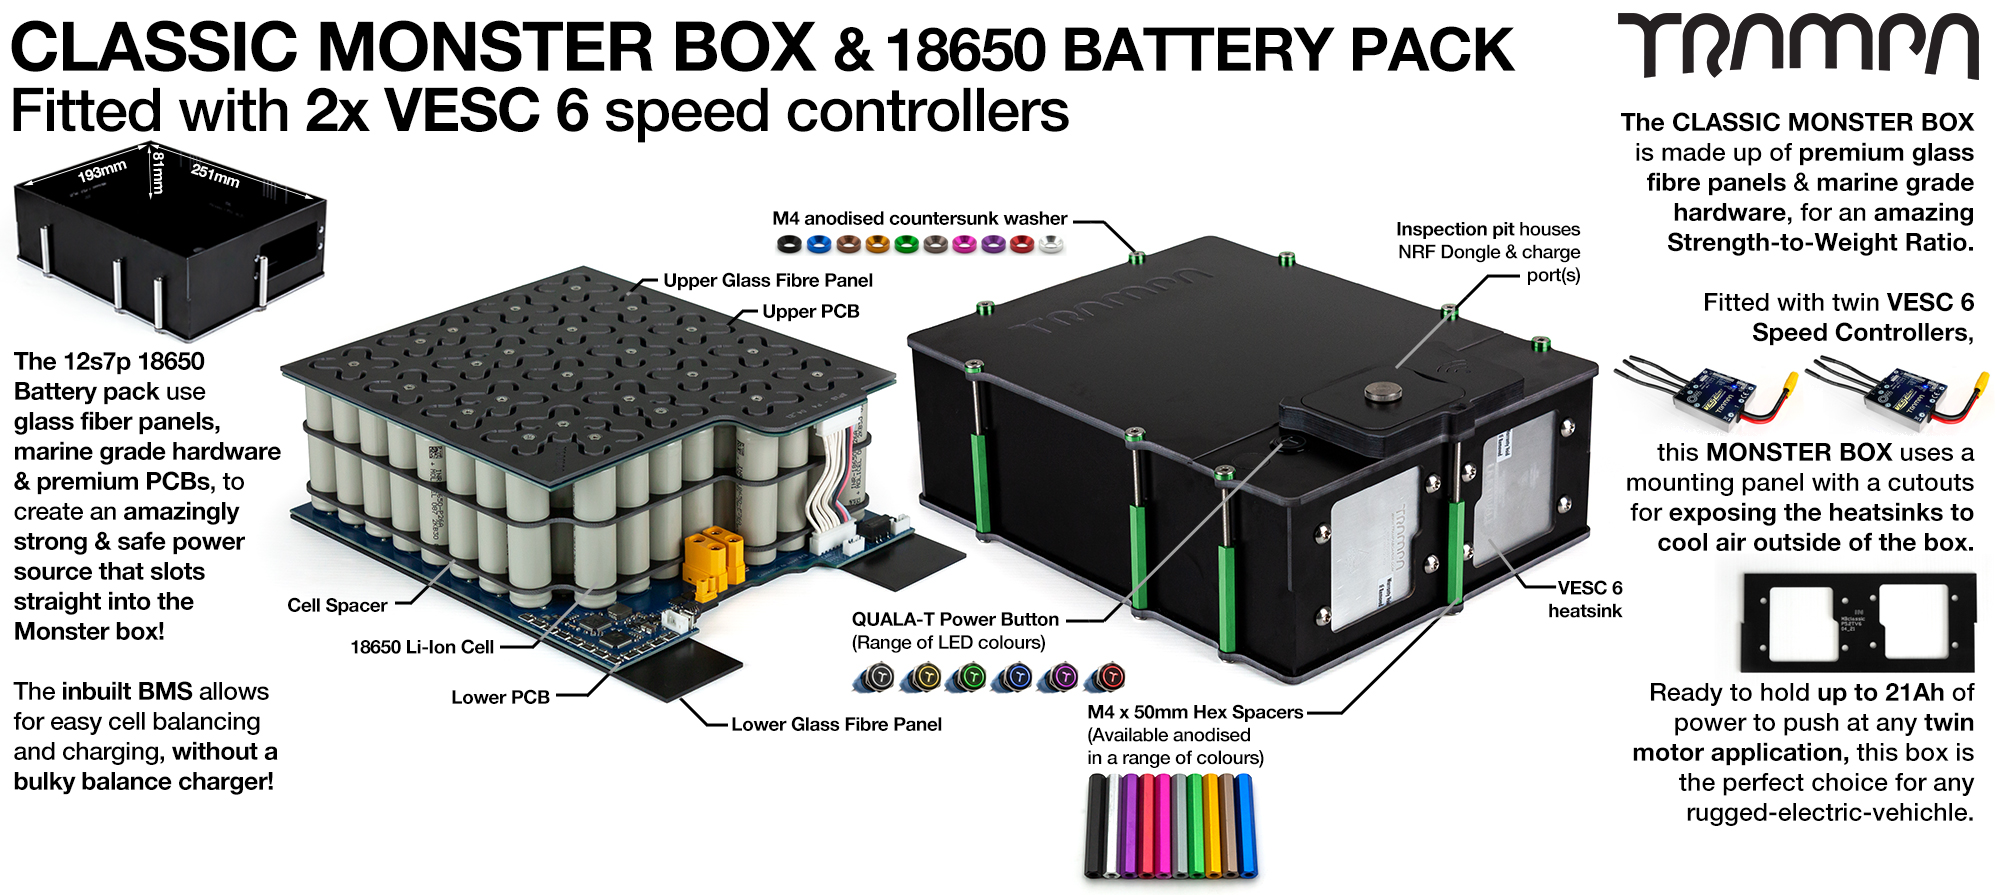 MONSTER BOX MkIV - with 18650 PCB Pack & 84x VTC 6 cells. Its specifically made to work in conjunction with TRAMPA's Electric Decks but can be adapted to fit anything